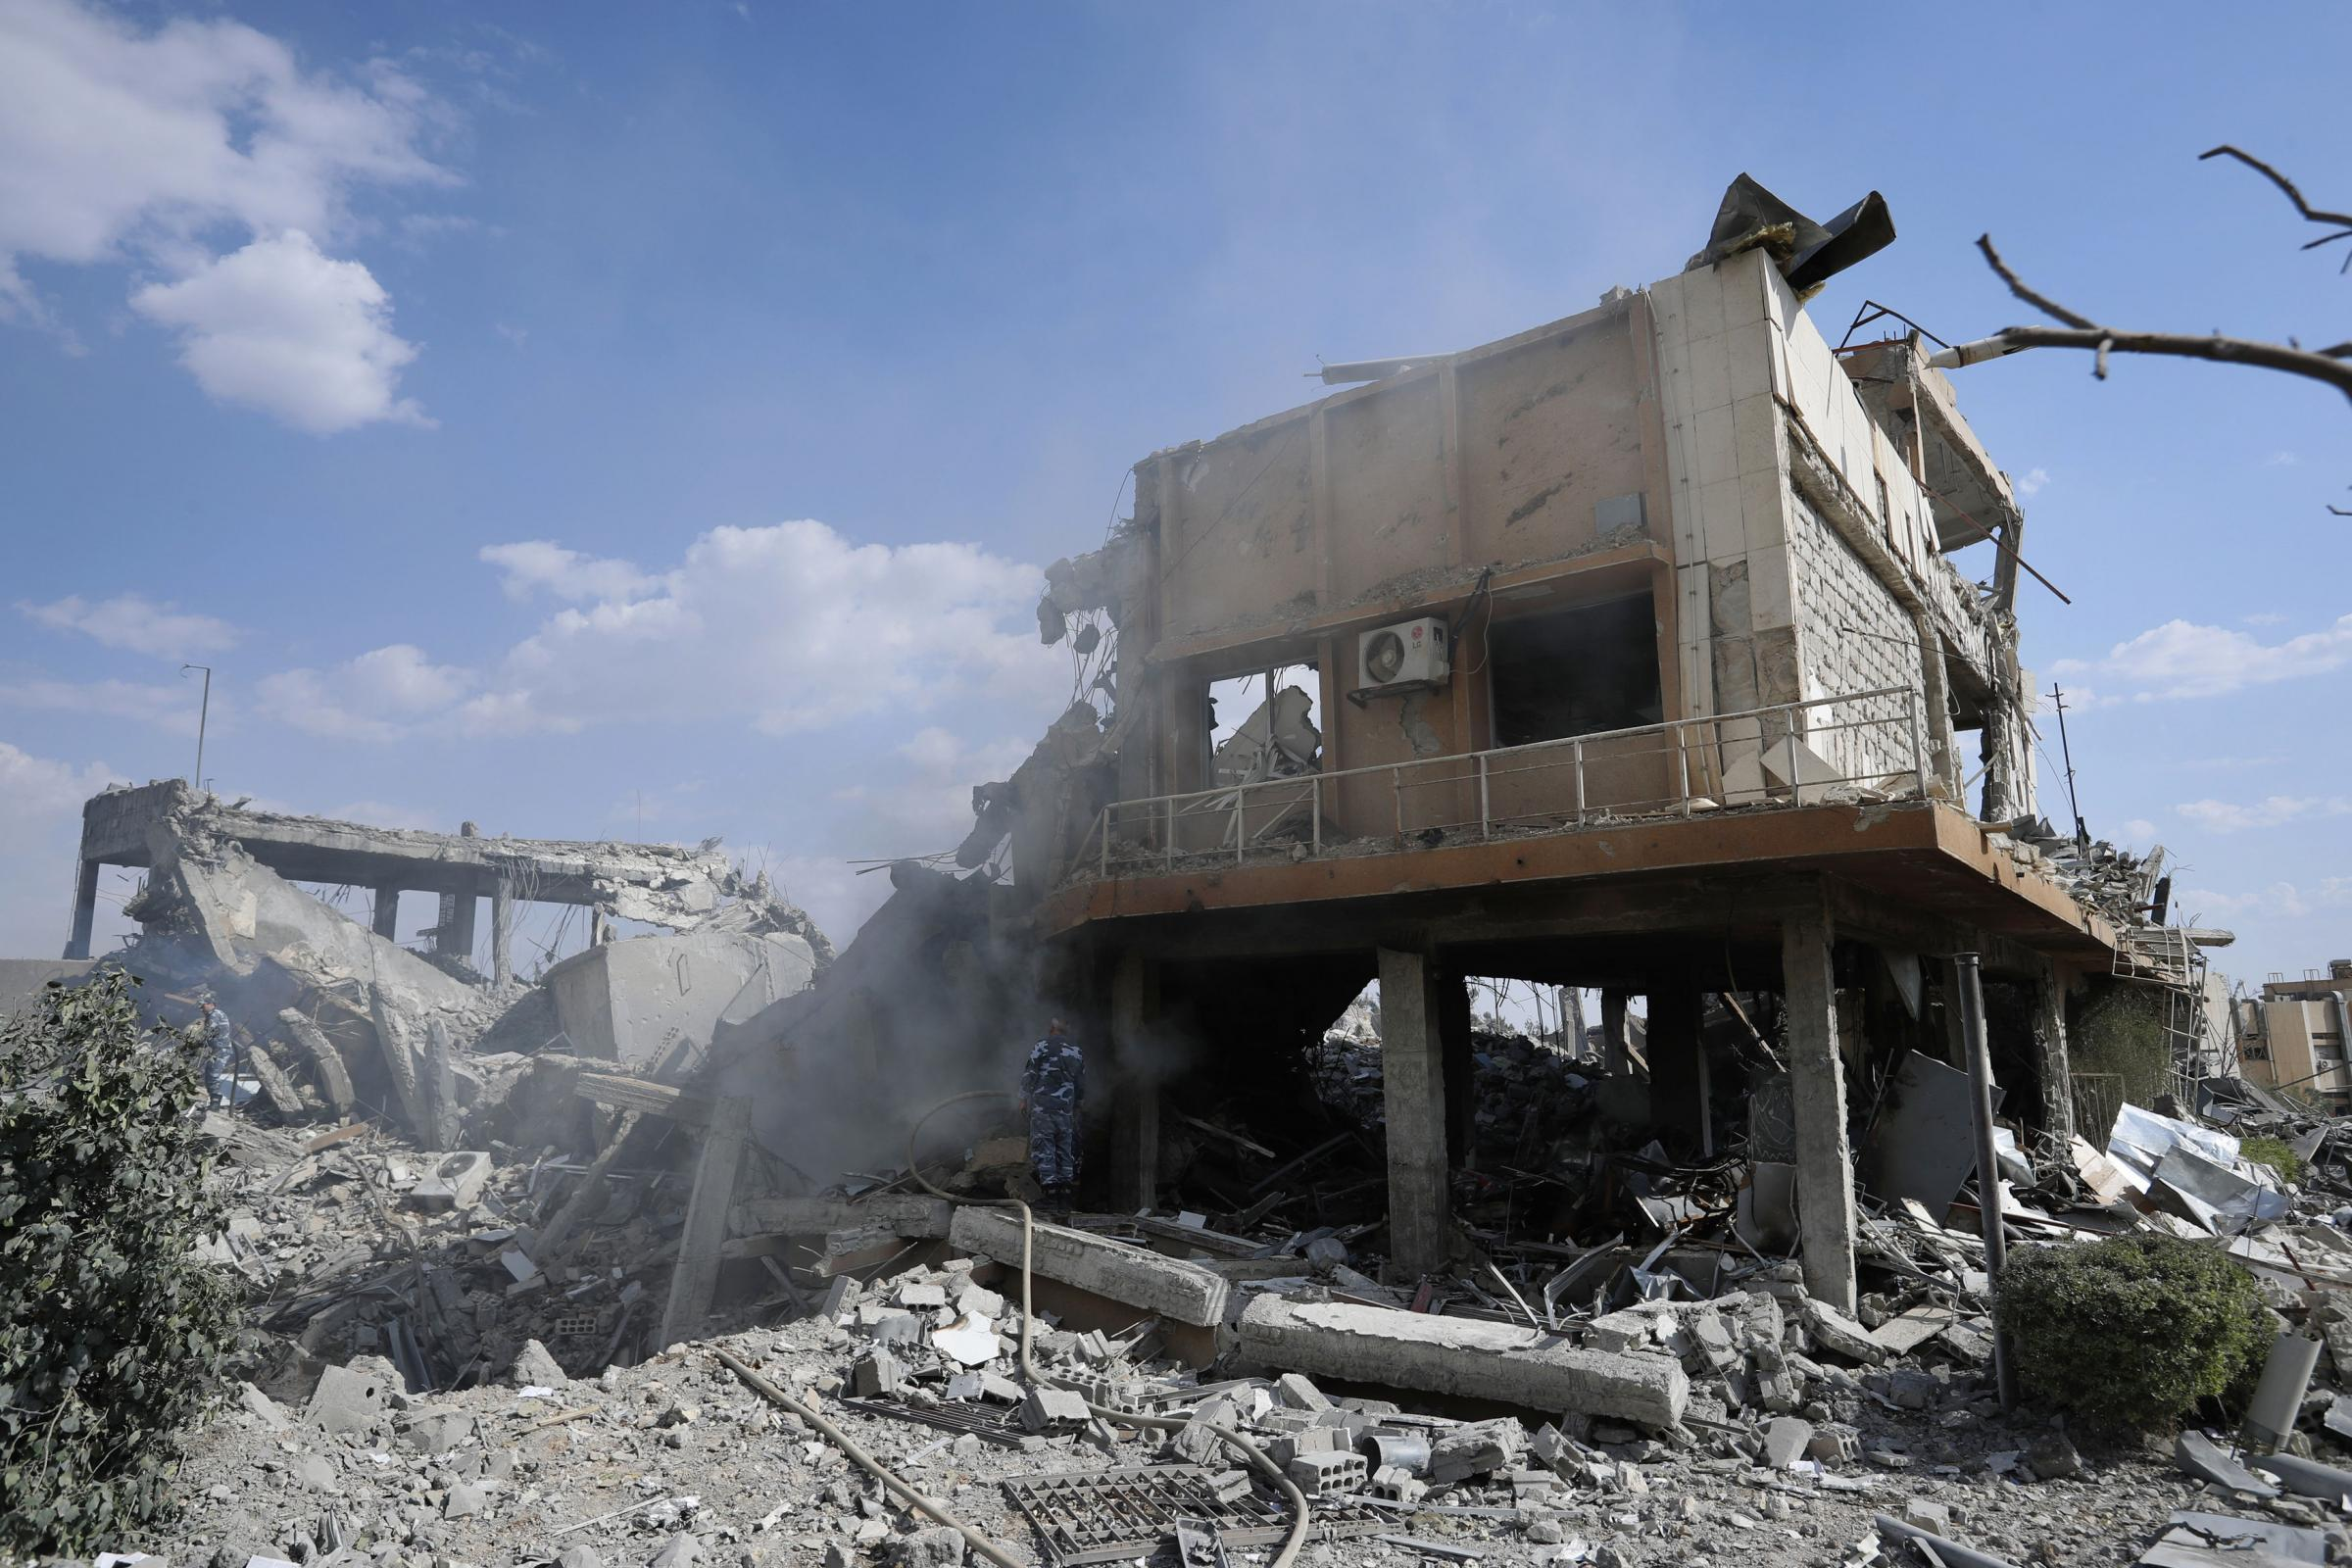 Damage at the Syrian Scientific Research Center which was attacked by U.S., British and French military strikes. (AP Photo/Hassan Ammar).